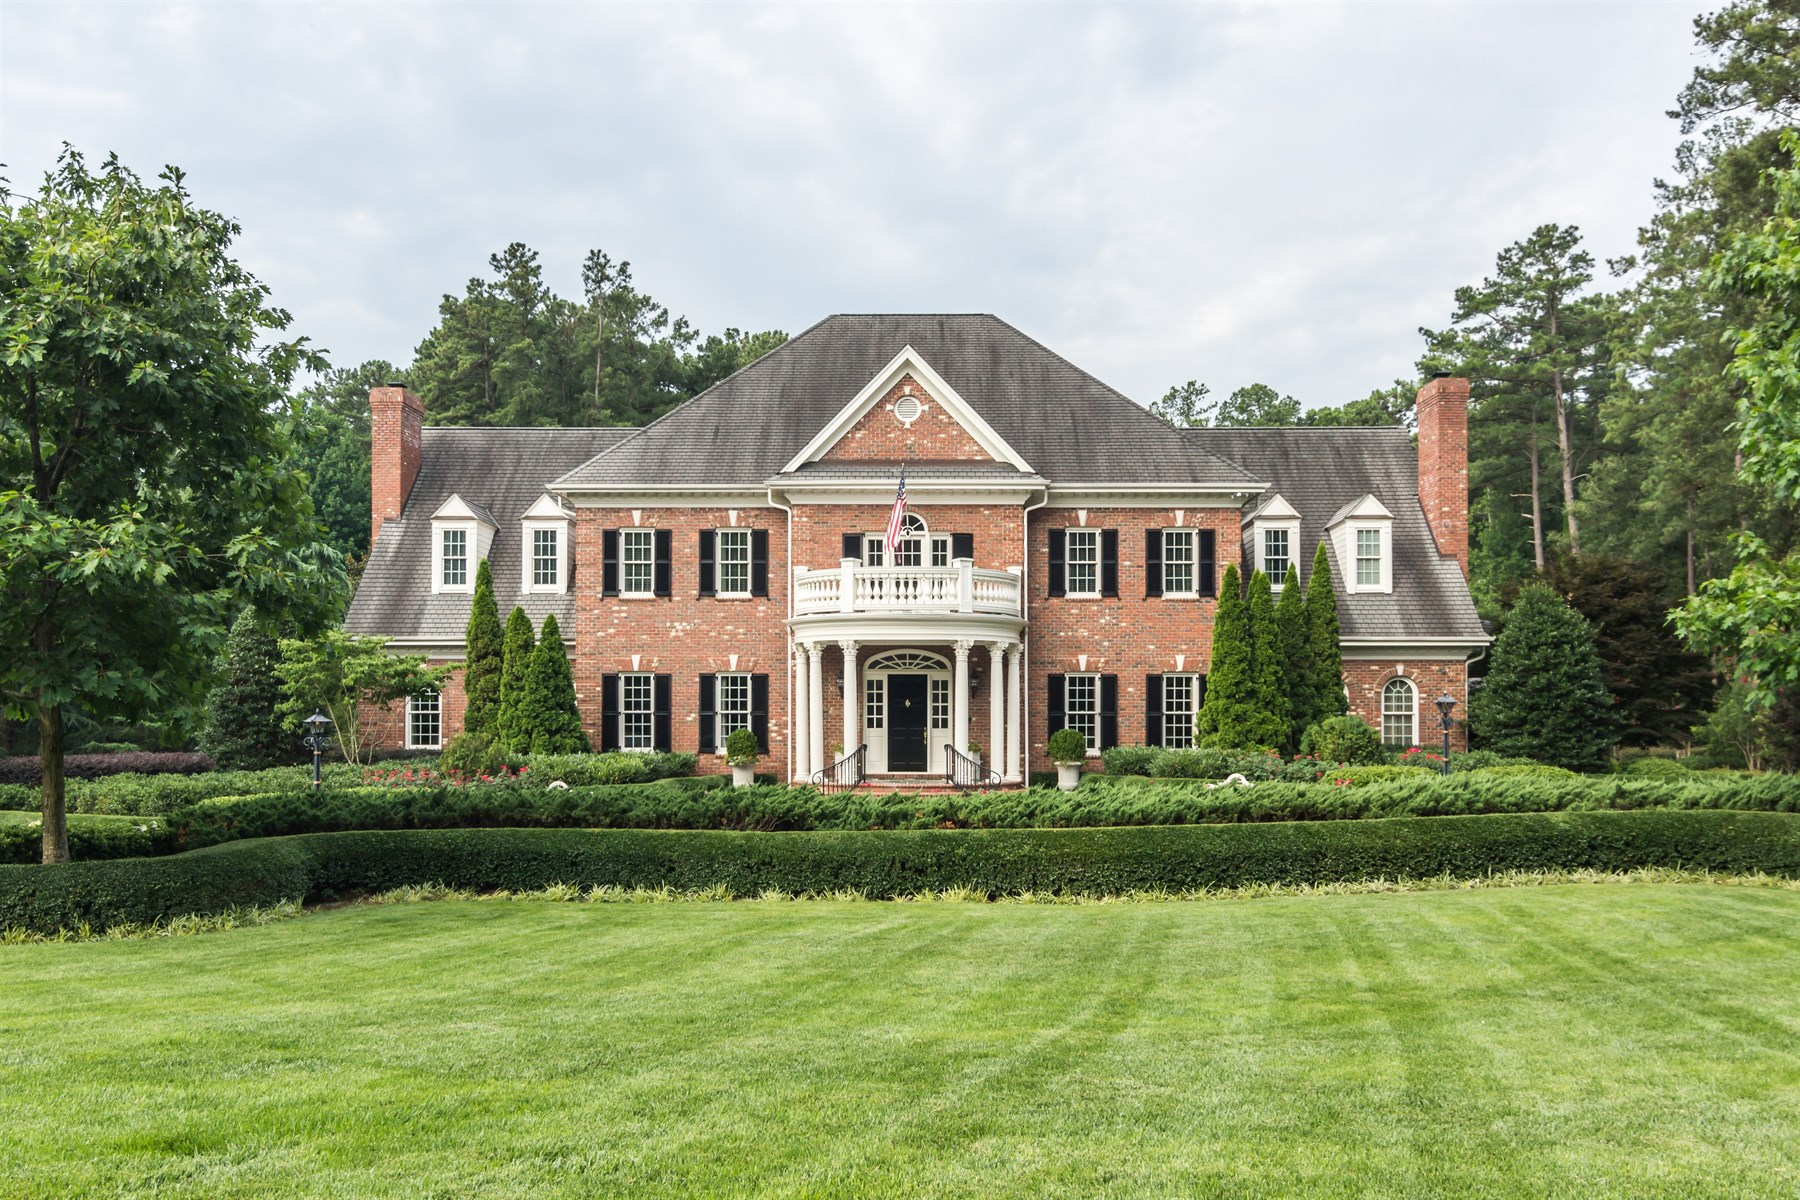 Single Family Home for Sale at MacGregor West Excecutive Estate 103 Marseille Place Cary, North Carolina 27511 United StatesIn/Around: Raleigh